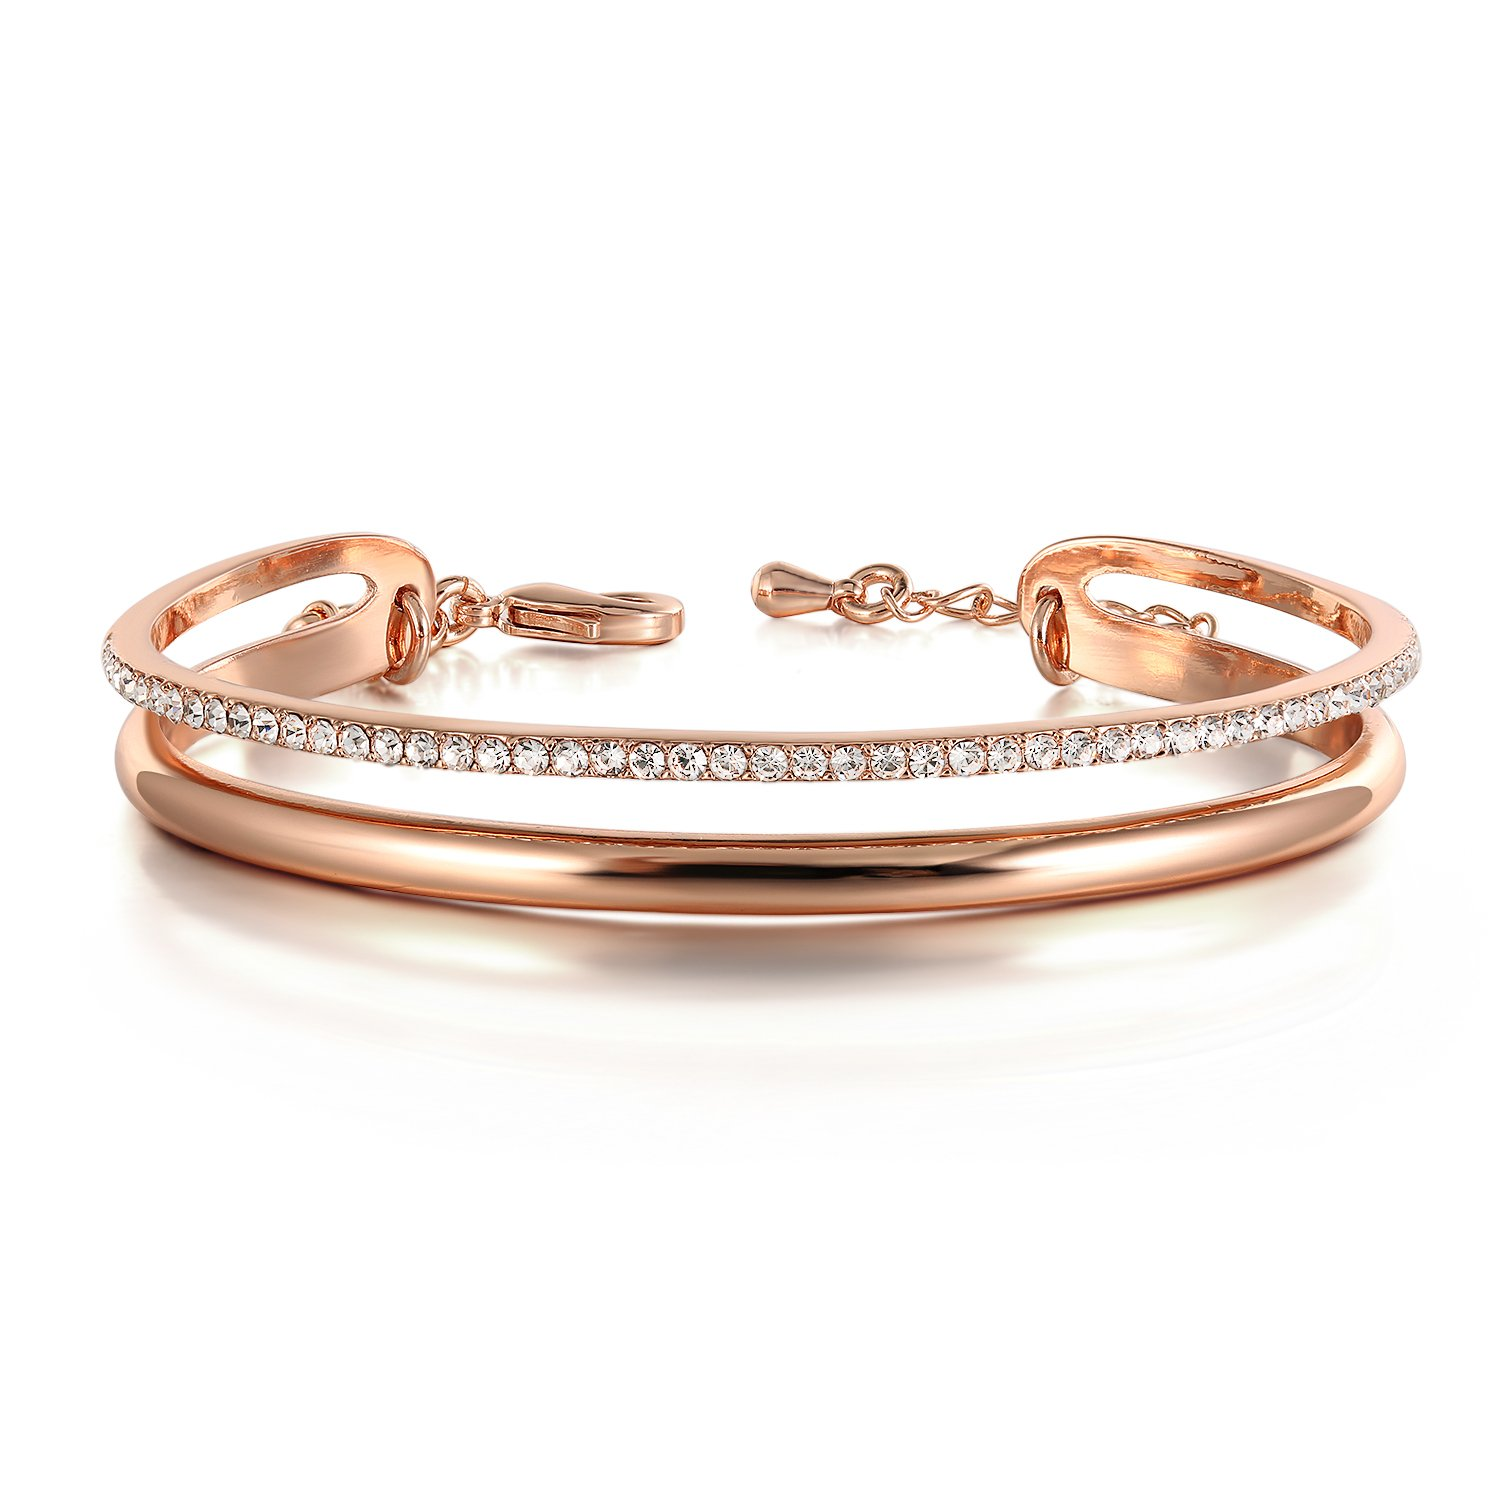 Thehorae Rose Gold Plated Bangle Bracelet Women Swarovski Crystals Wedding Birthday Gift Jewellery Box Included 90500371305B